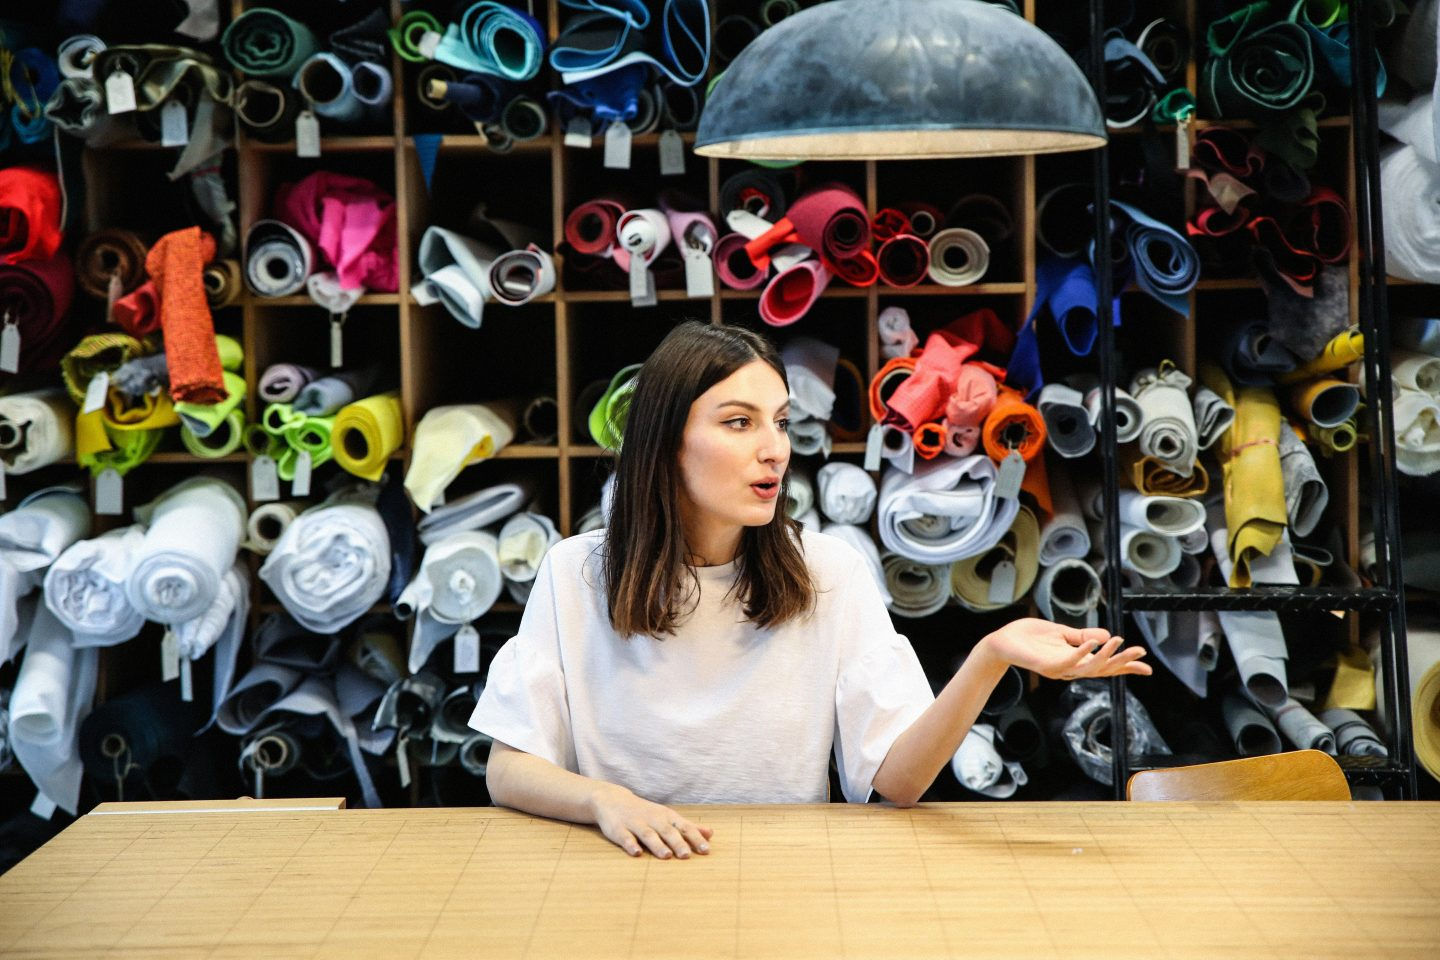 Woman sitting in front of materials, adidas creative office environment; adidas-Makerlab-creativity-employees-creators-Federica Tedeschi-Senior Material Designer-Brand Creative Direction